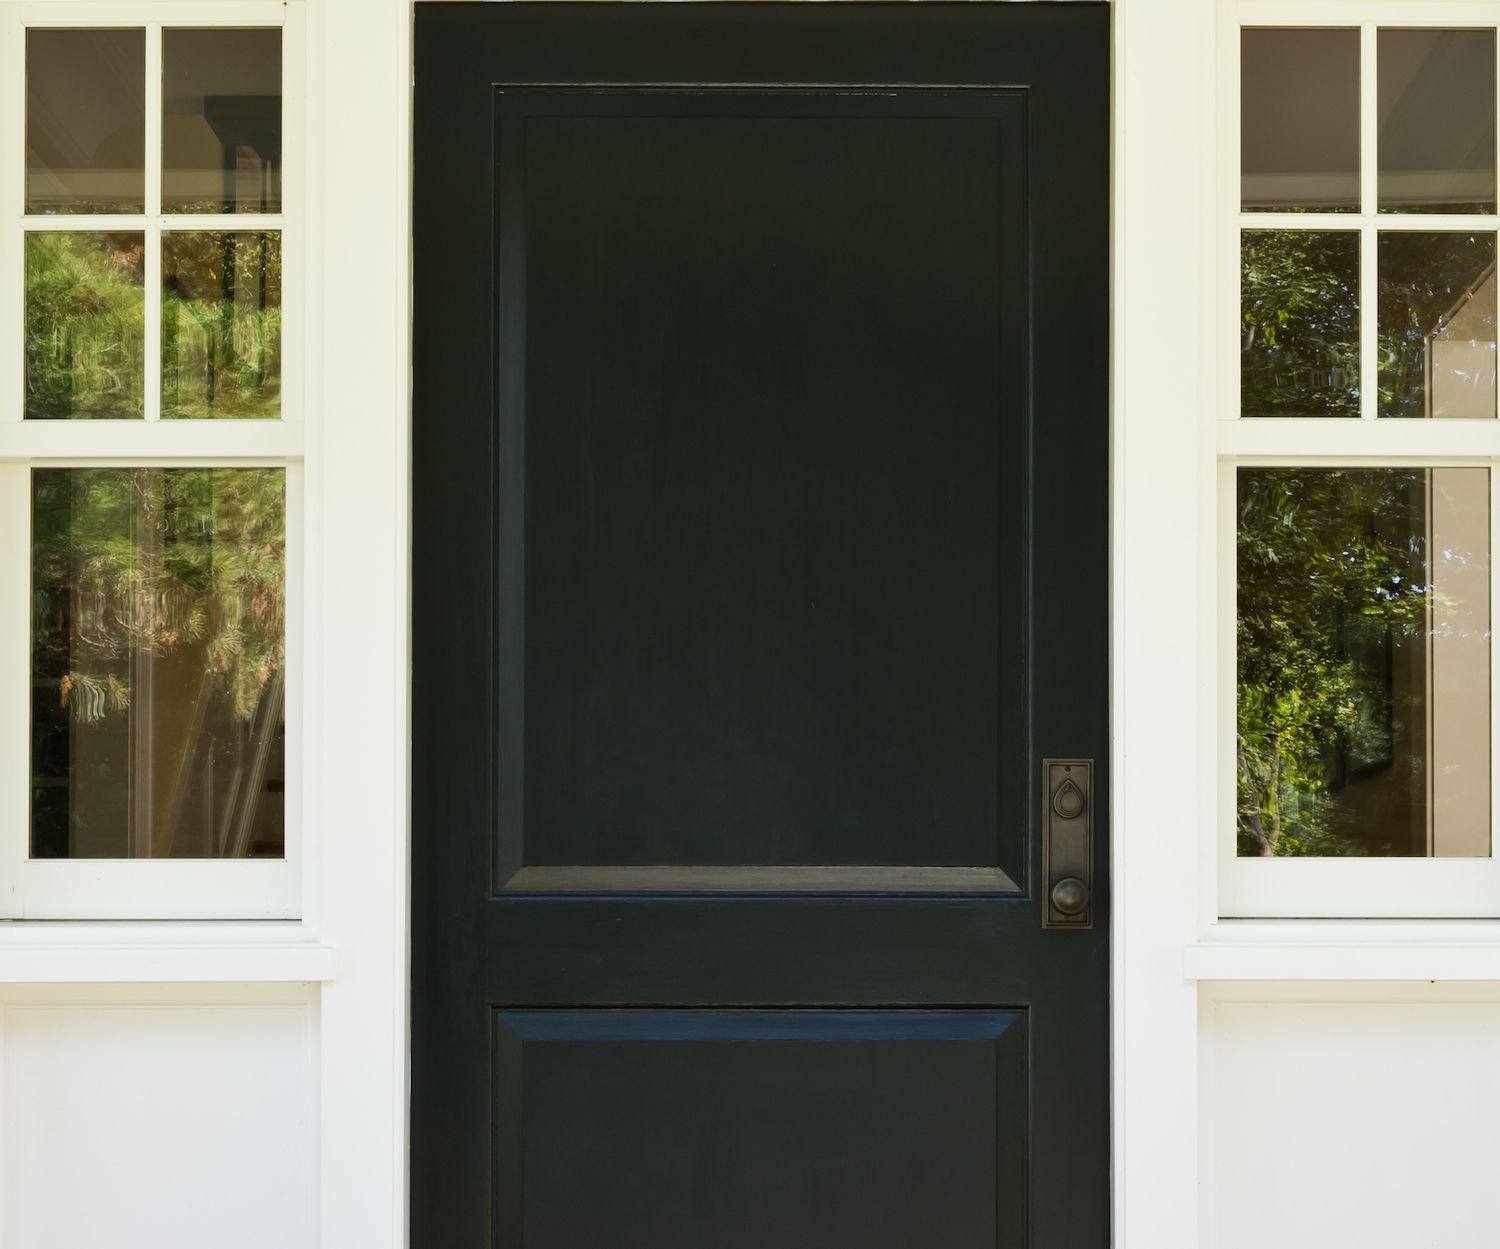 Doors at Lowes | Garage Door Bottom Seal Lowes | Door Prices at Lowes